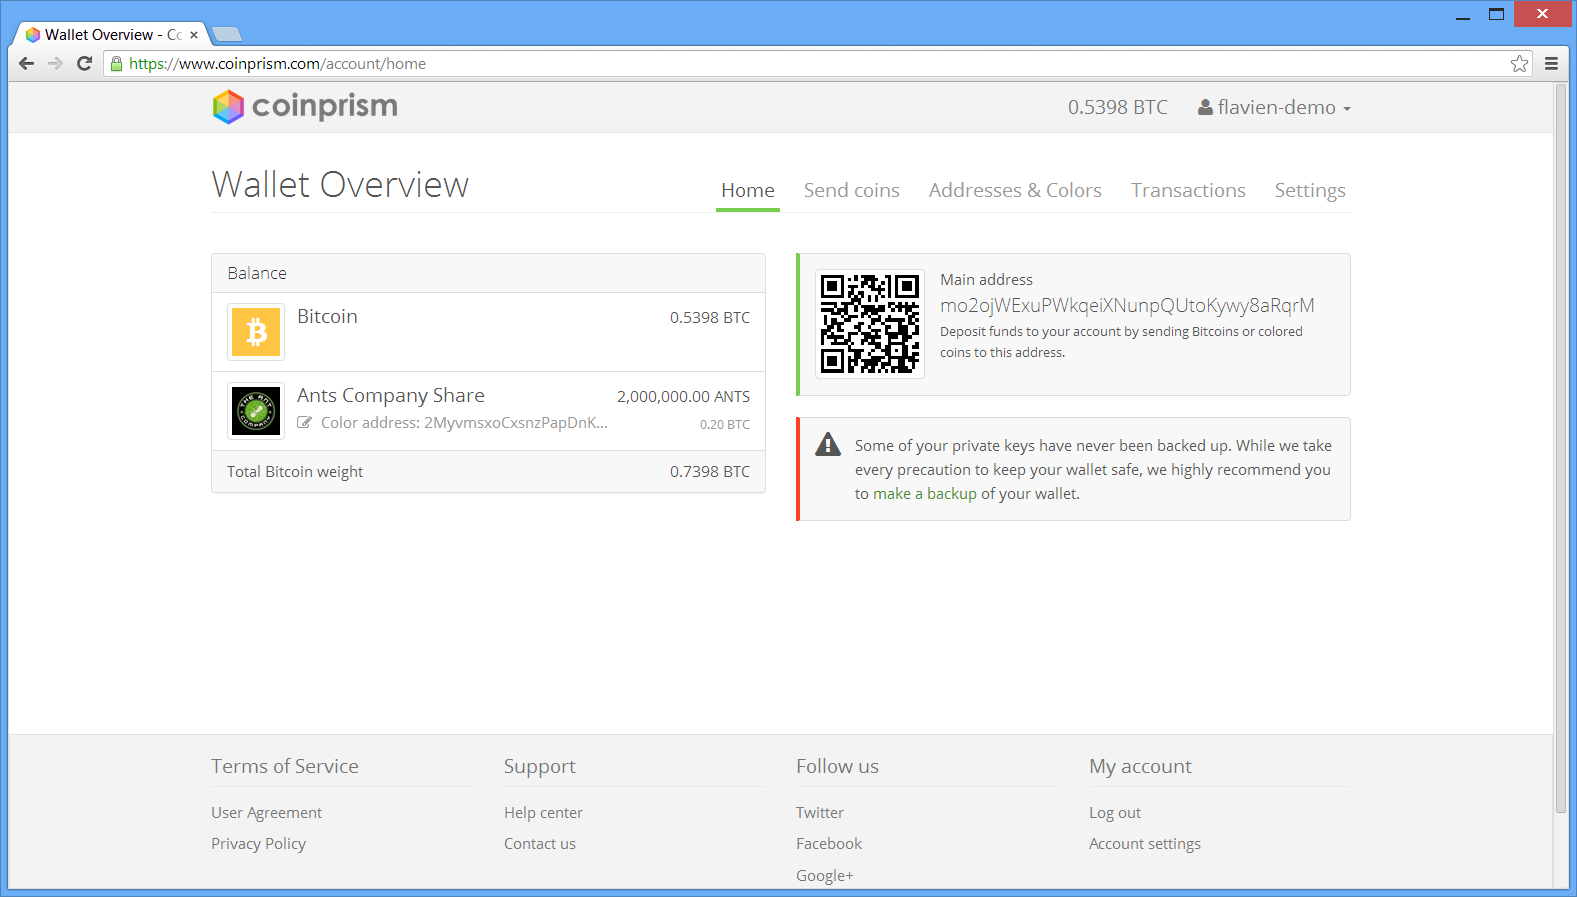 Coinprism Screenshot 1.png